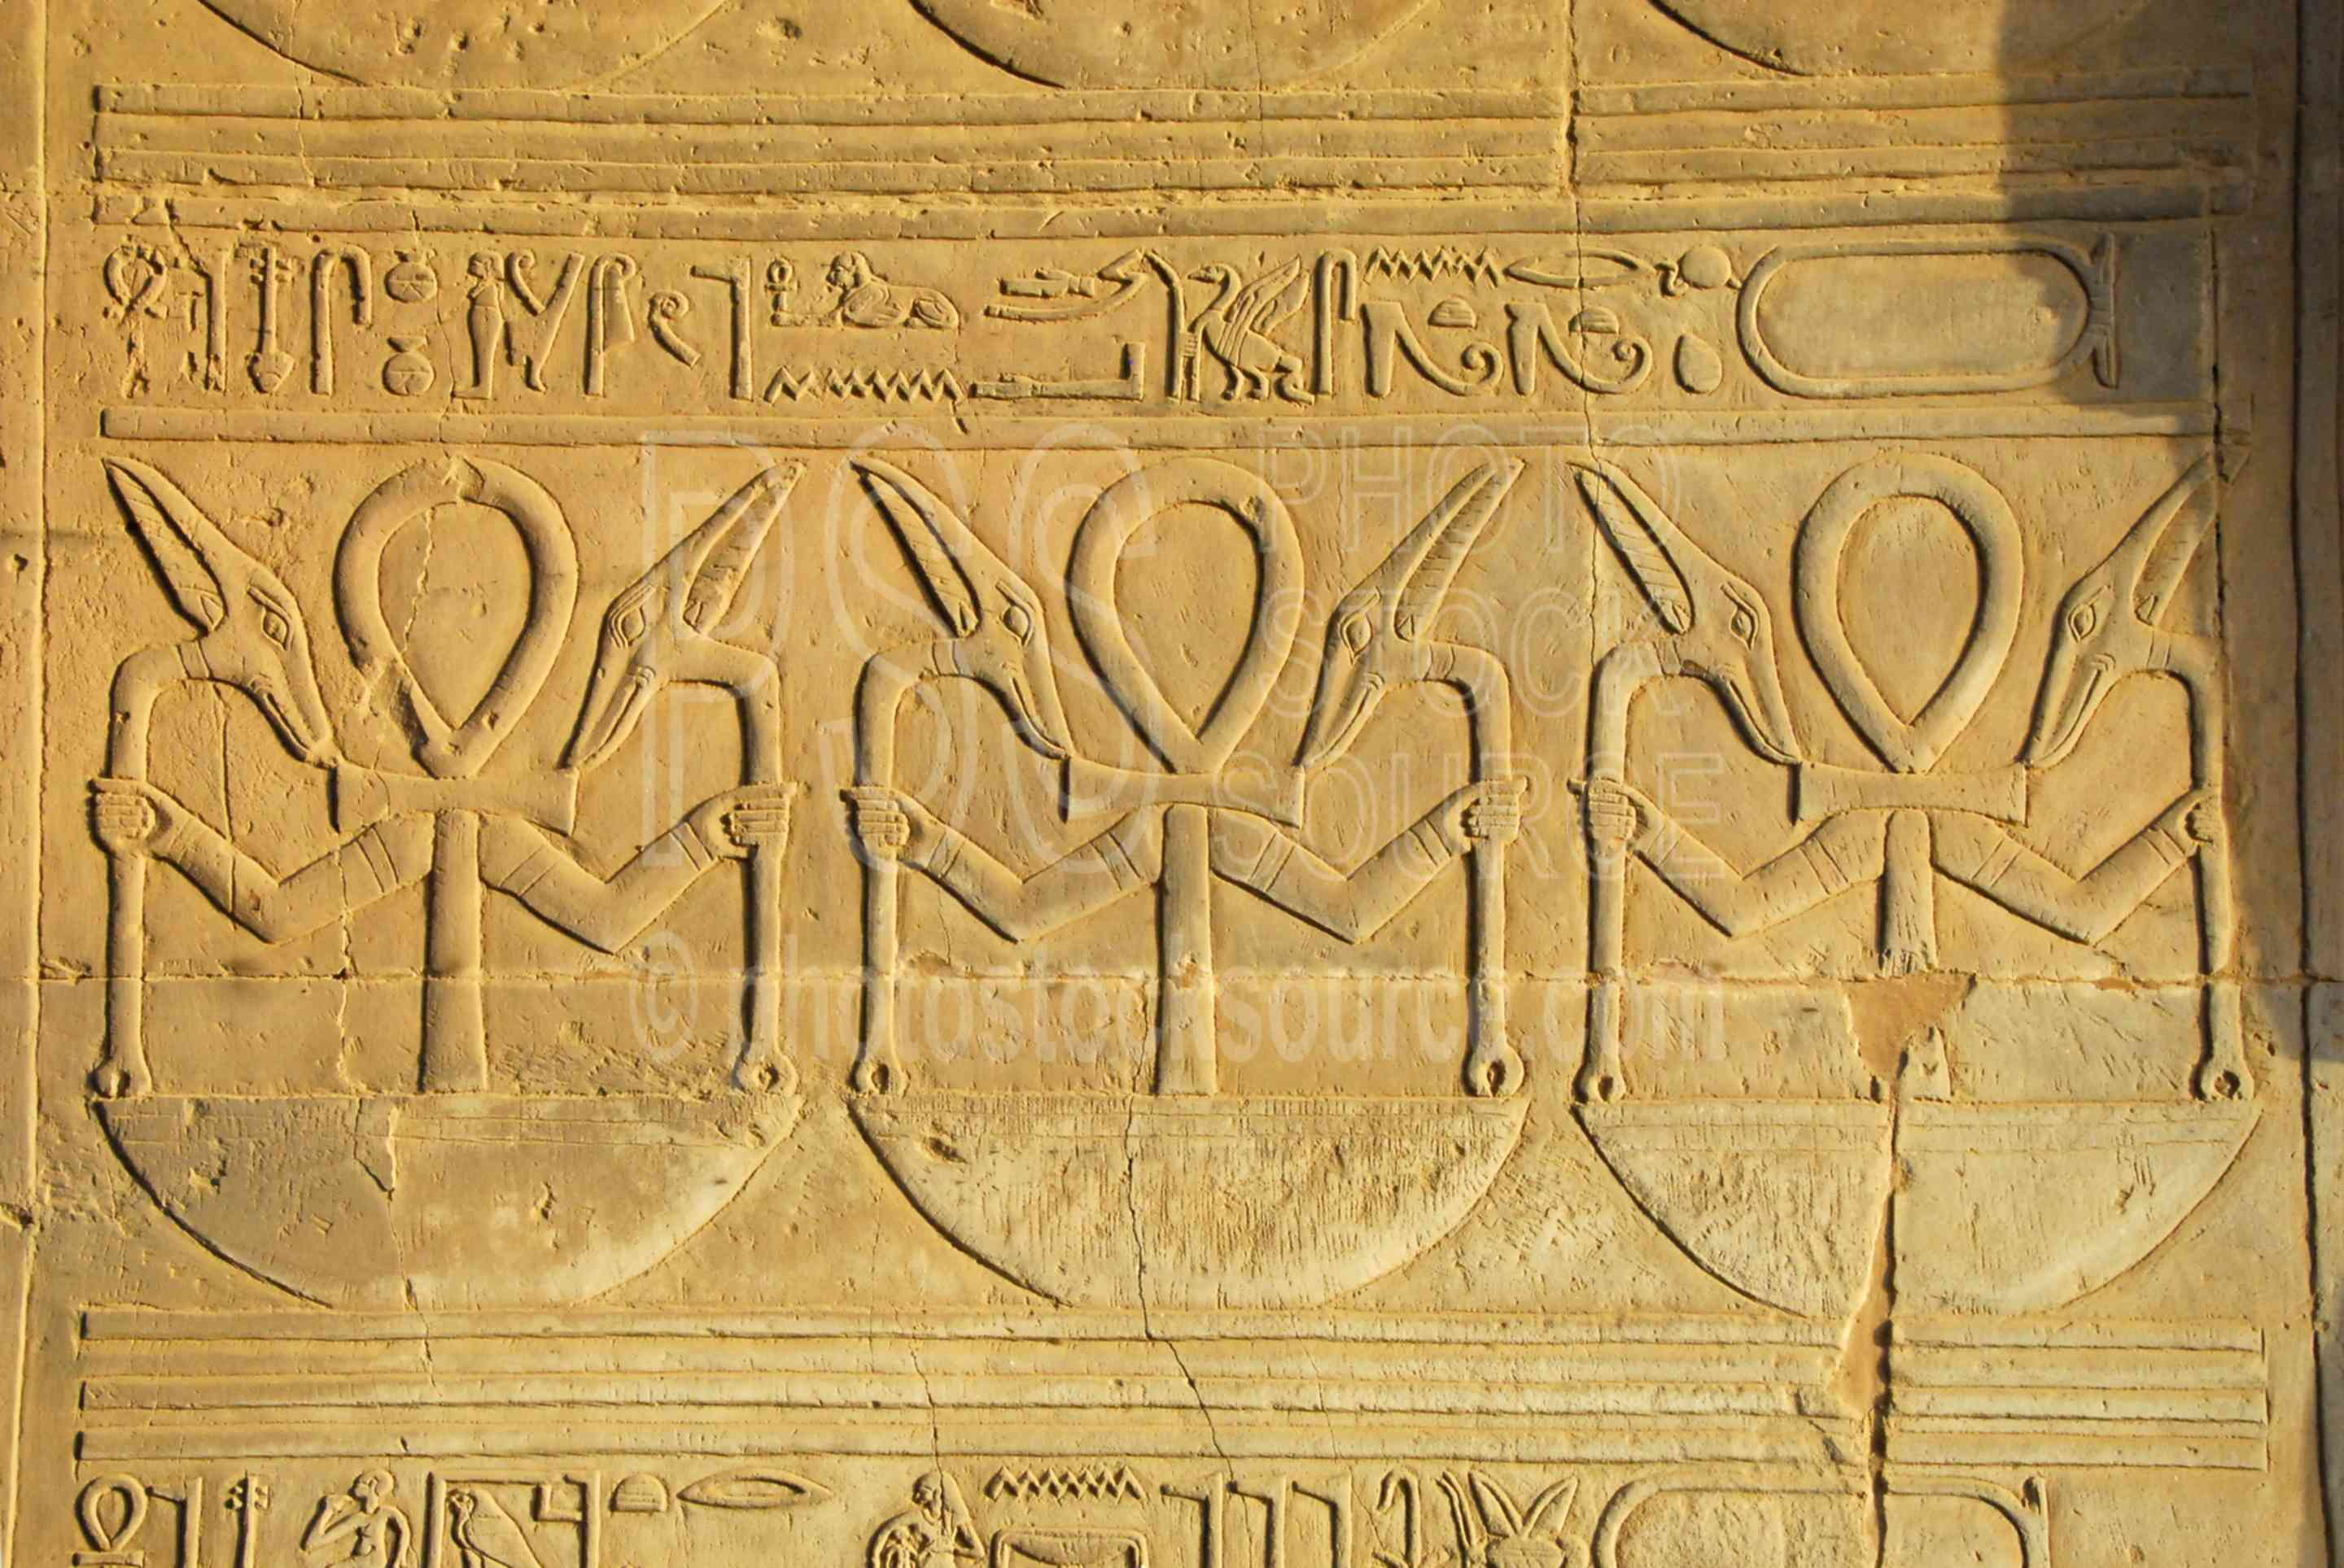 Hieroglyphics on Walls,ptolemy,horus,haroeris,sobek,horus the elder,anhk,hieroglyphics